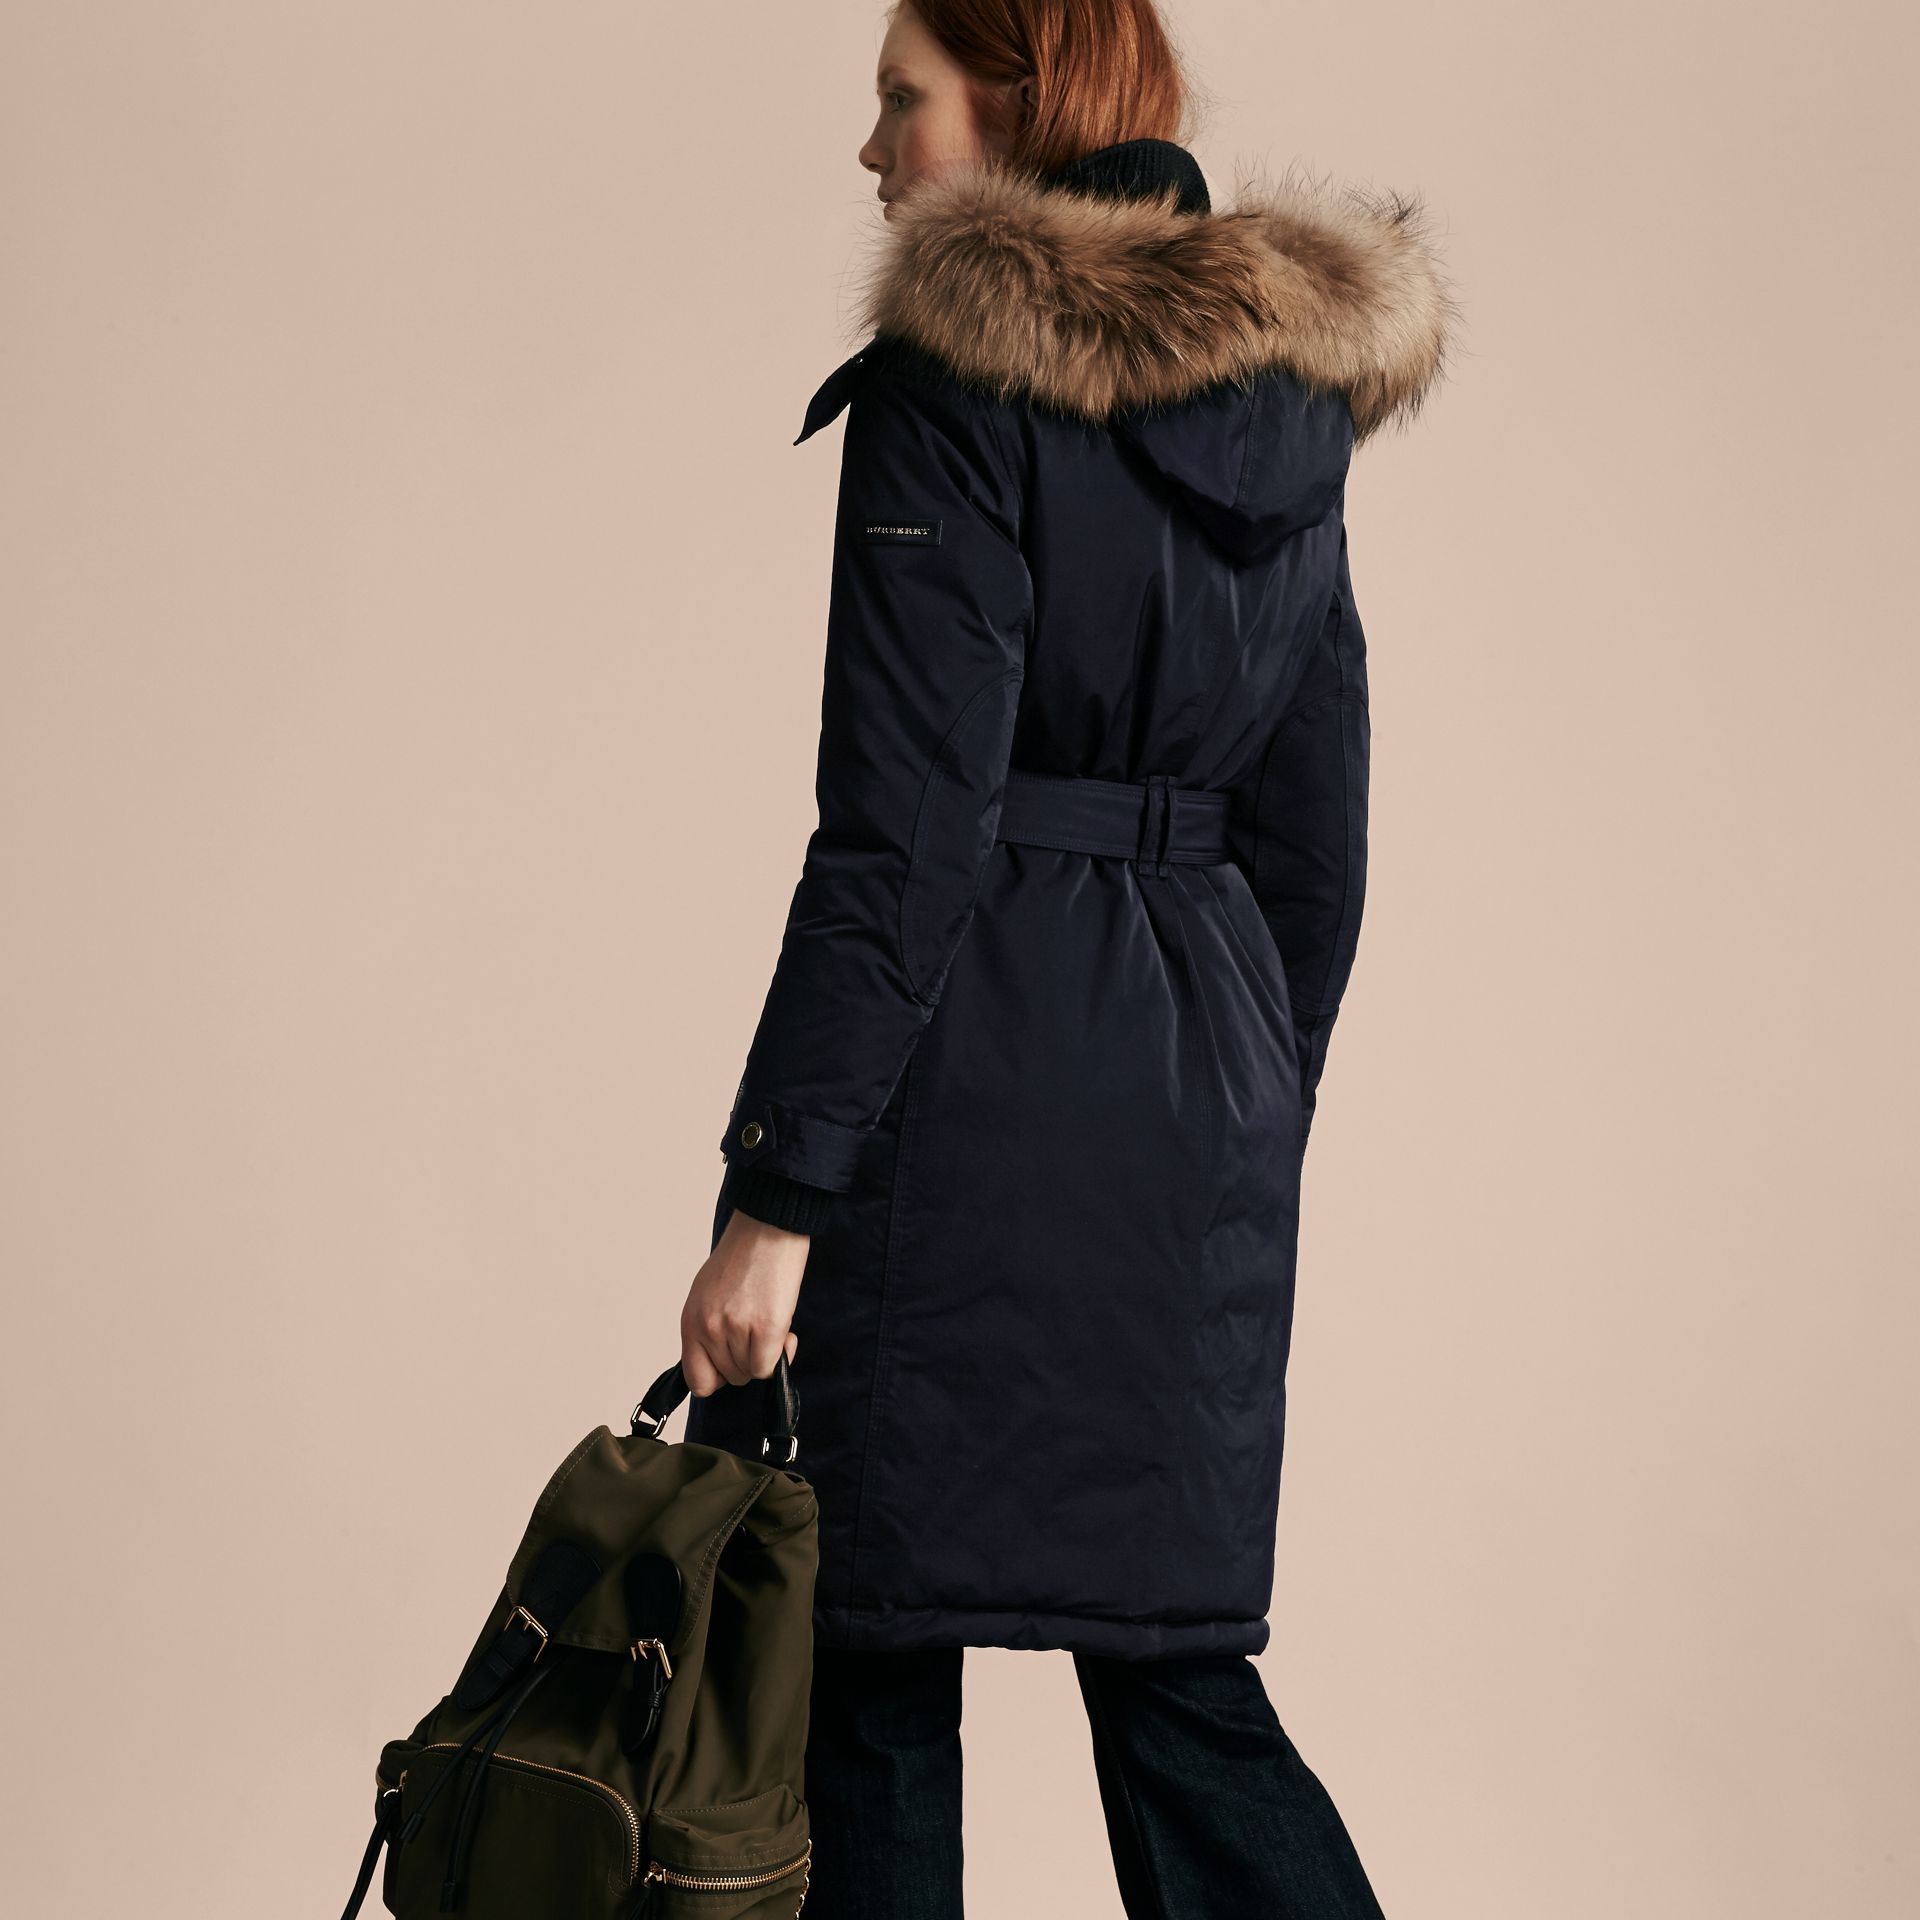 Navy Down-filled Parka Coat with Detachable Fur Trim Navy - gallery image 3